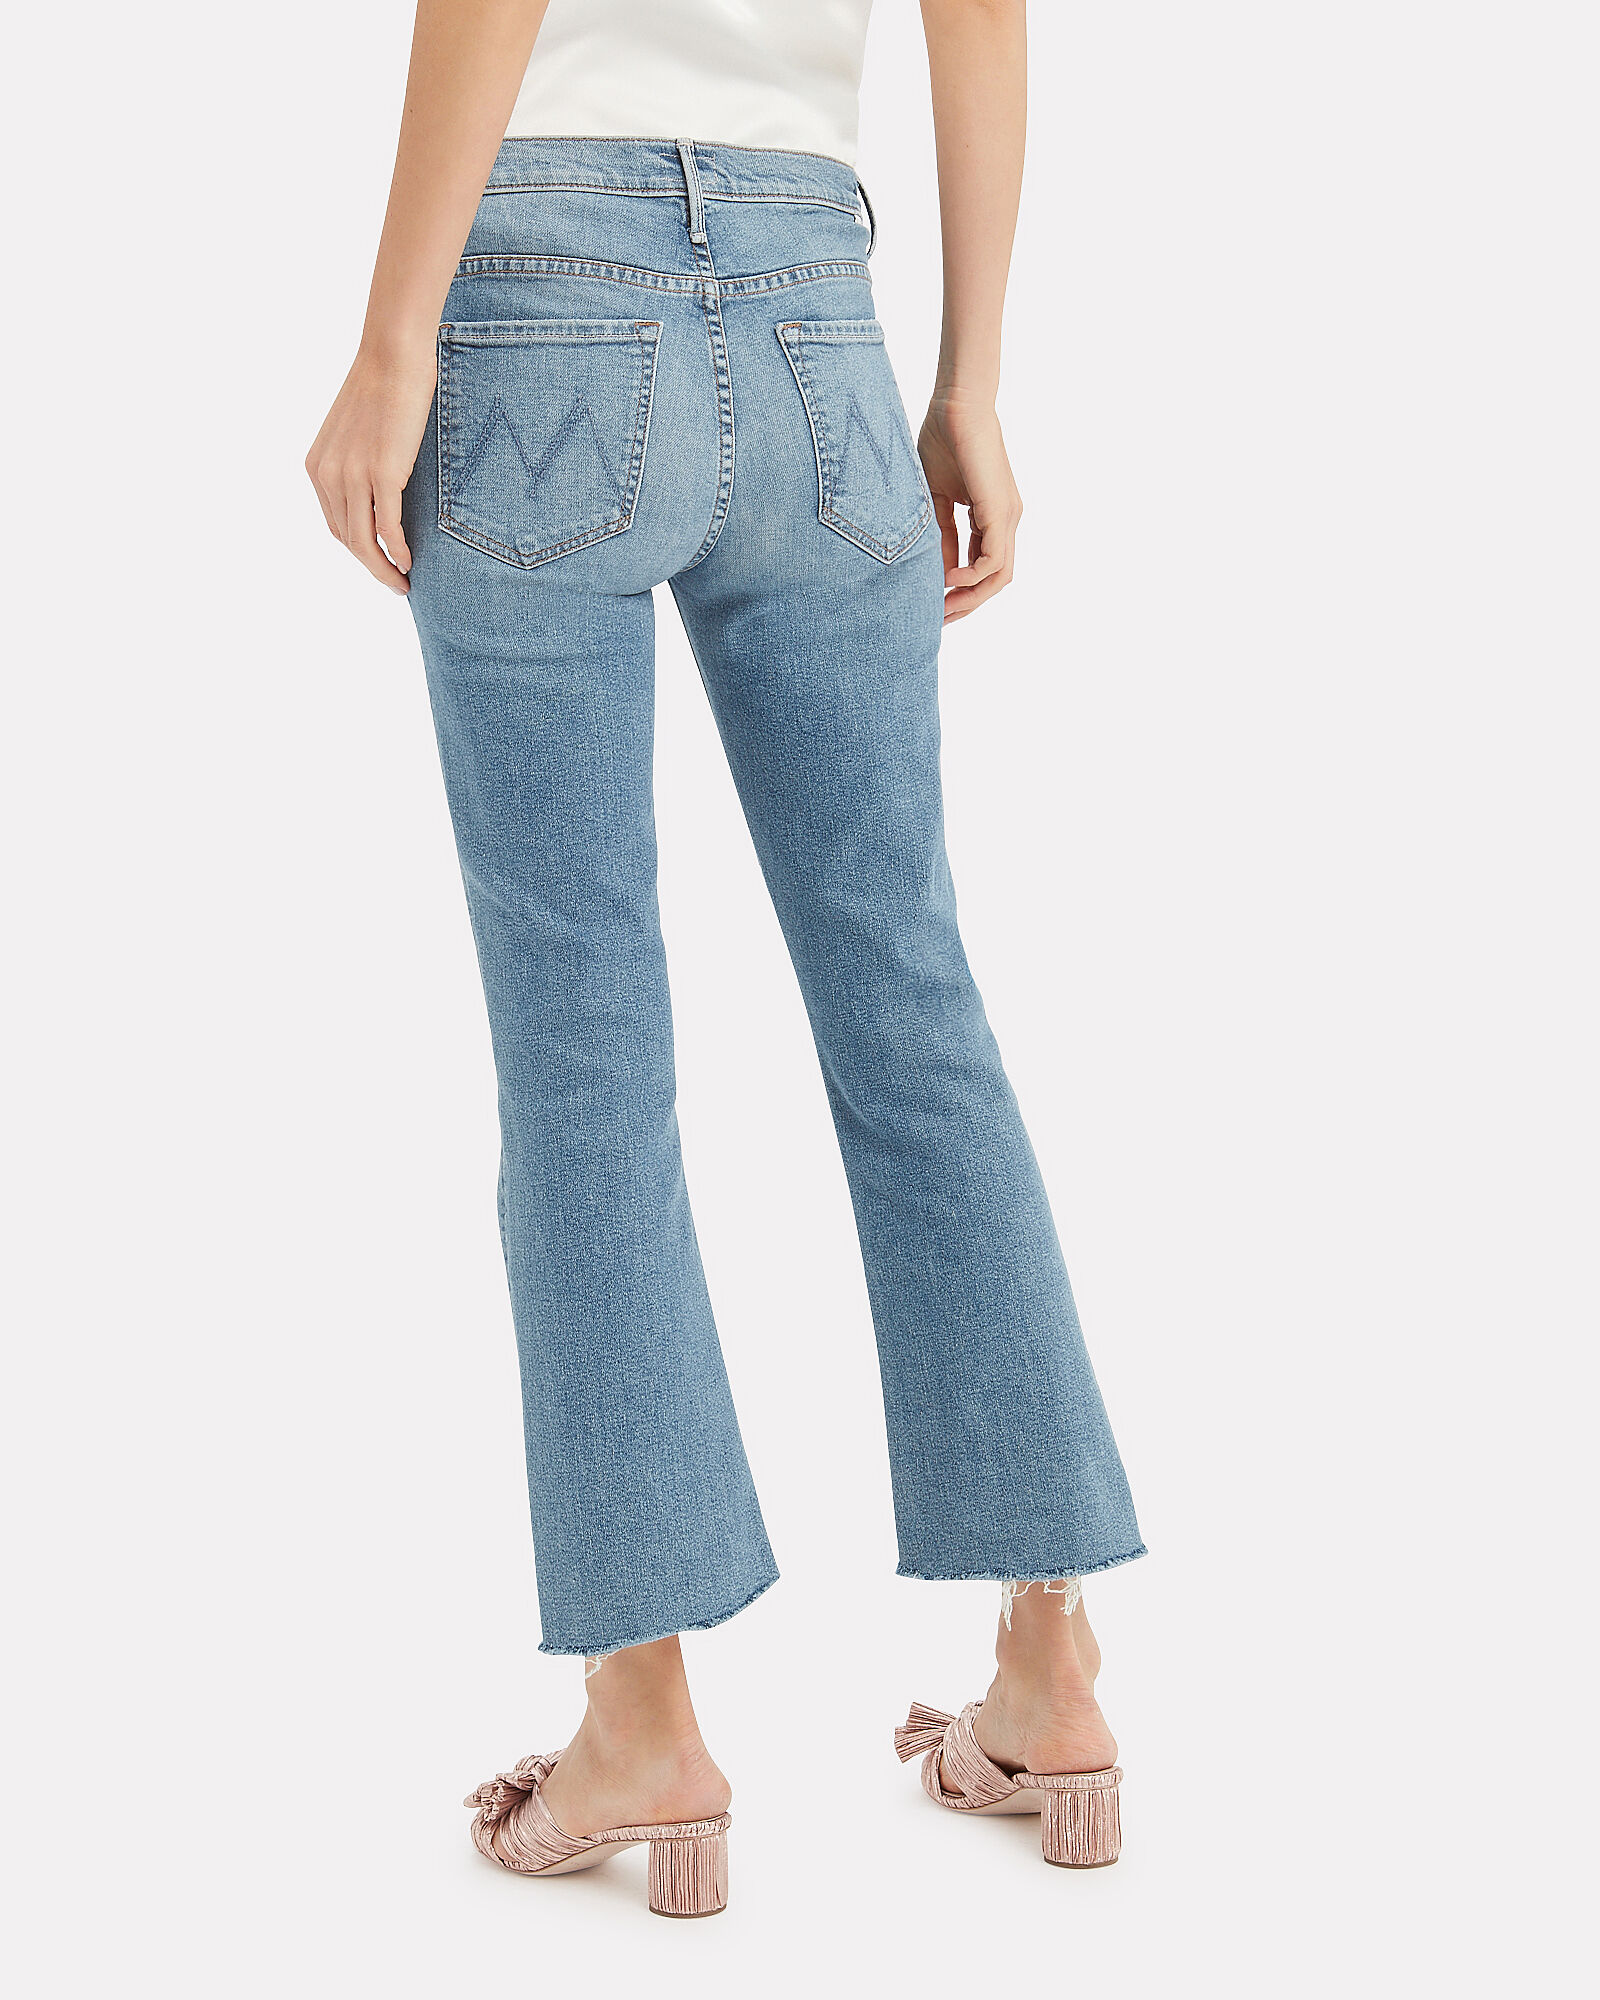 The Insider Crop Step Fray Jeans, SHOOT TO THRILL, hi-res